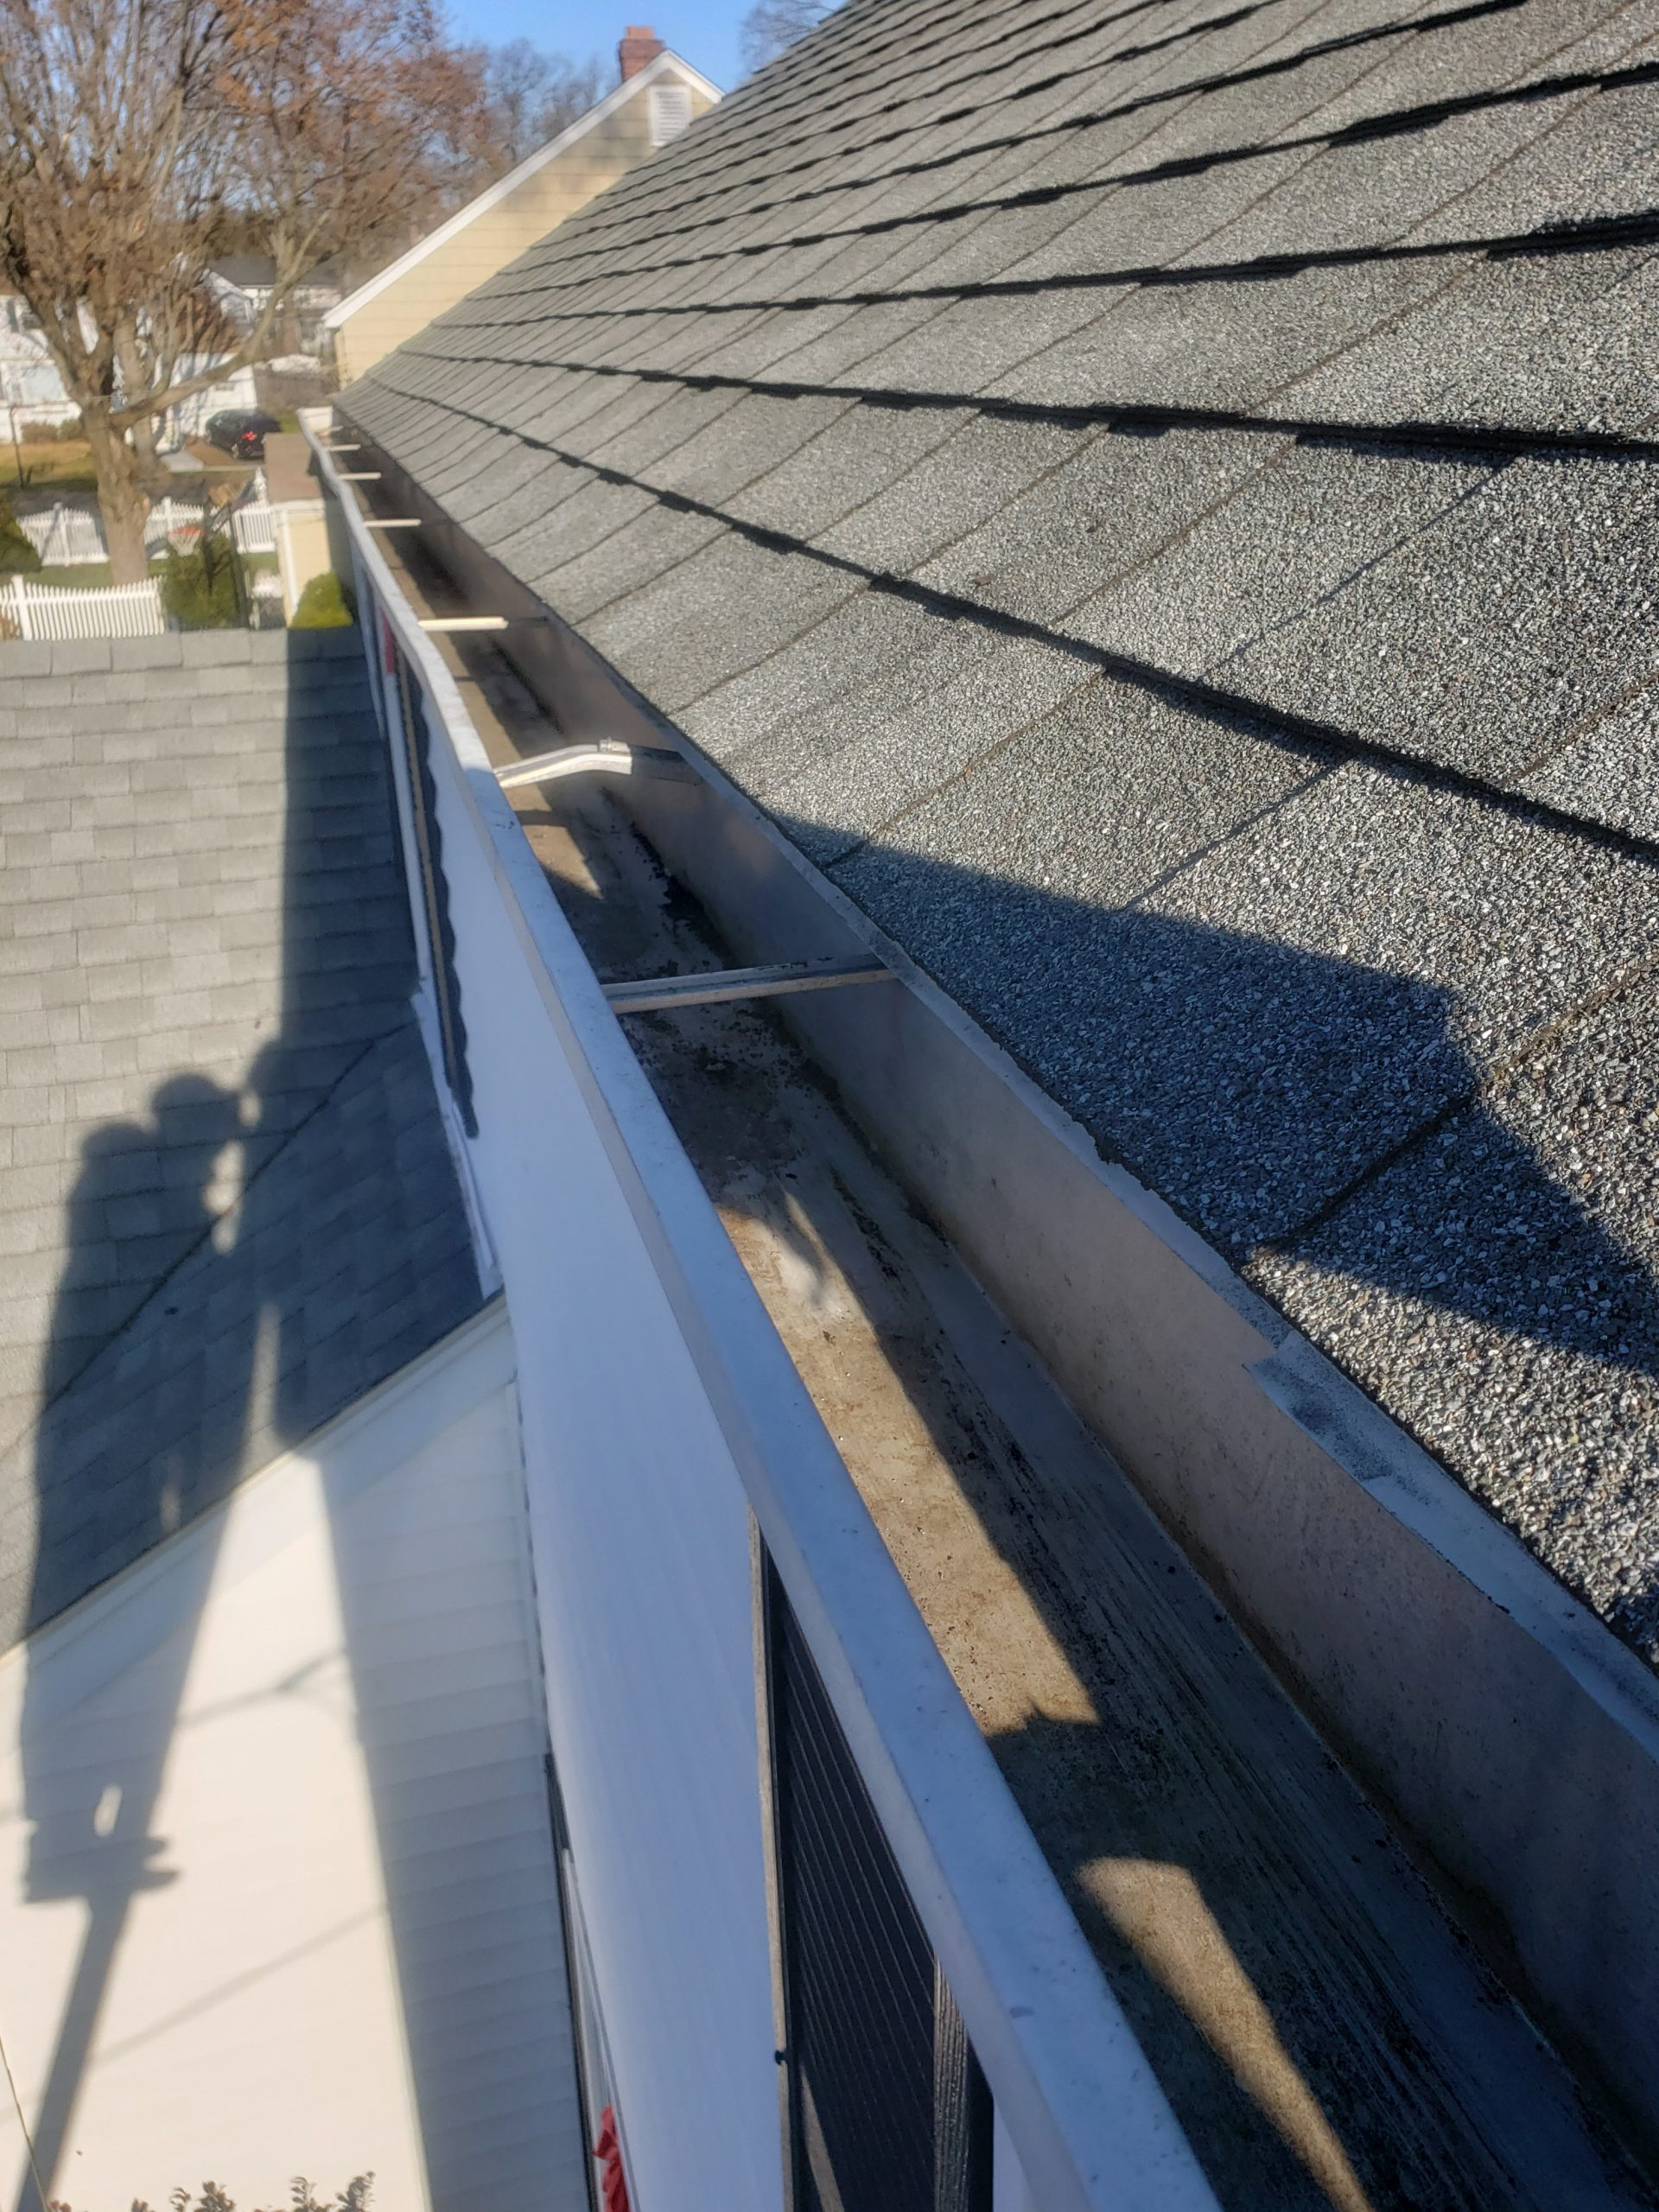 Gutter and Roof pressure washing in Easton CT